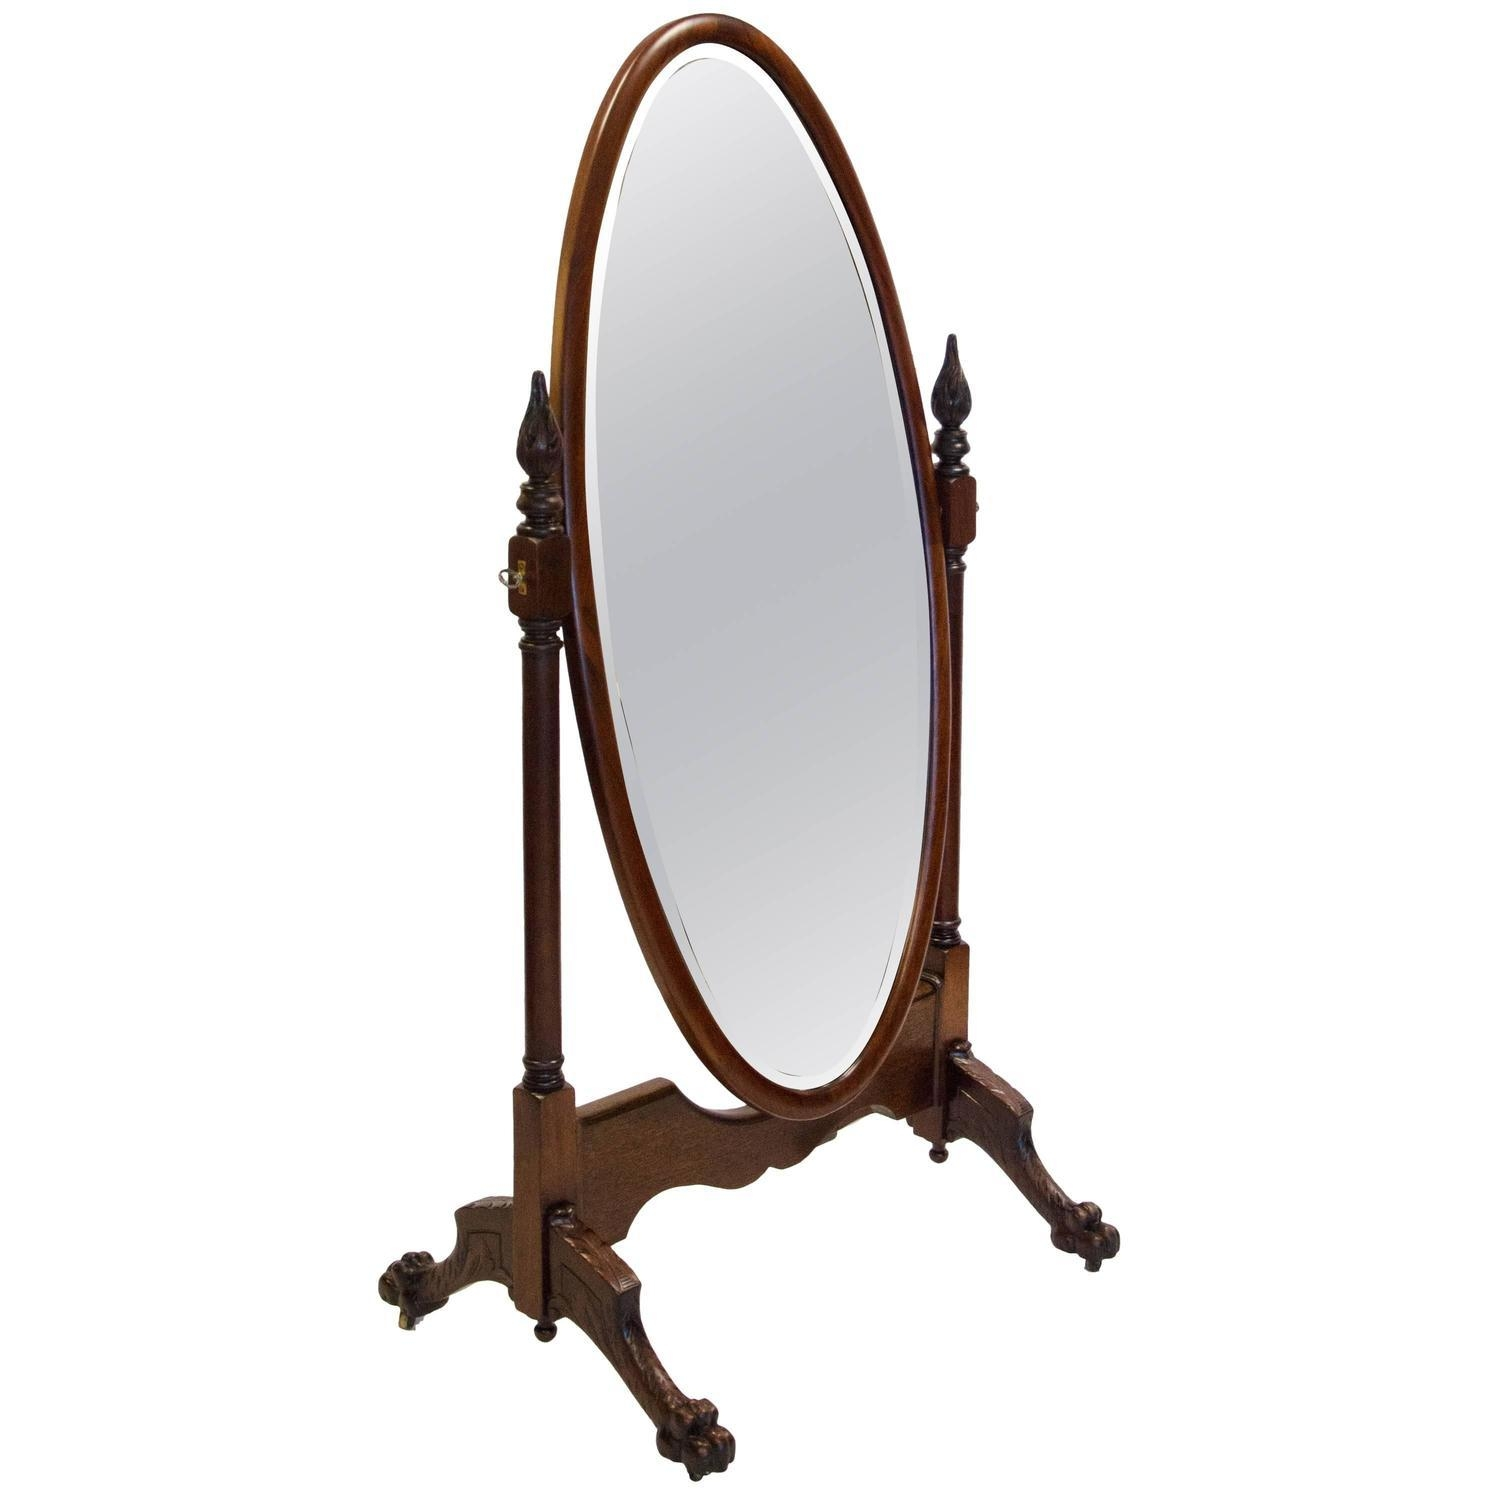 Antique & Vintage Floor Mirrors And Full Length Mirrors For Sale With Full Length Mirror Vintage (Image 2 of 20)